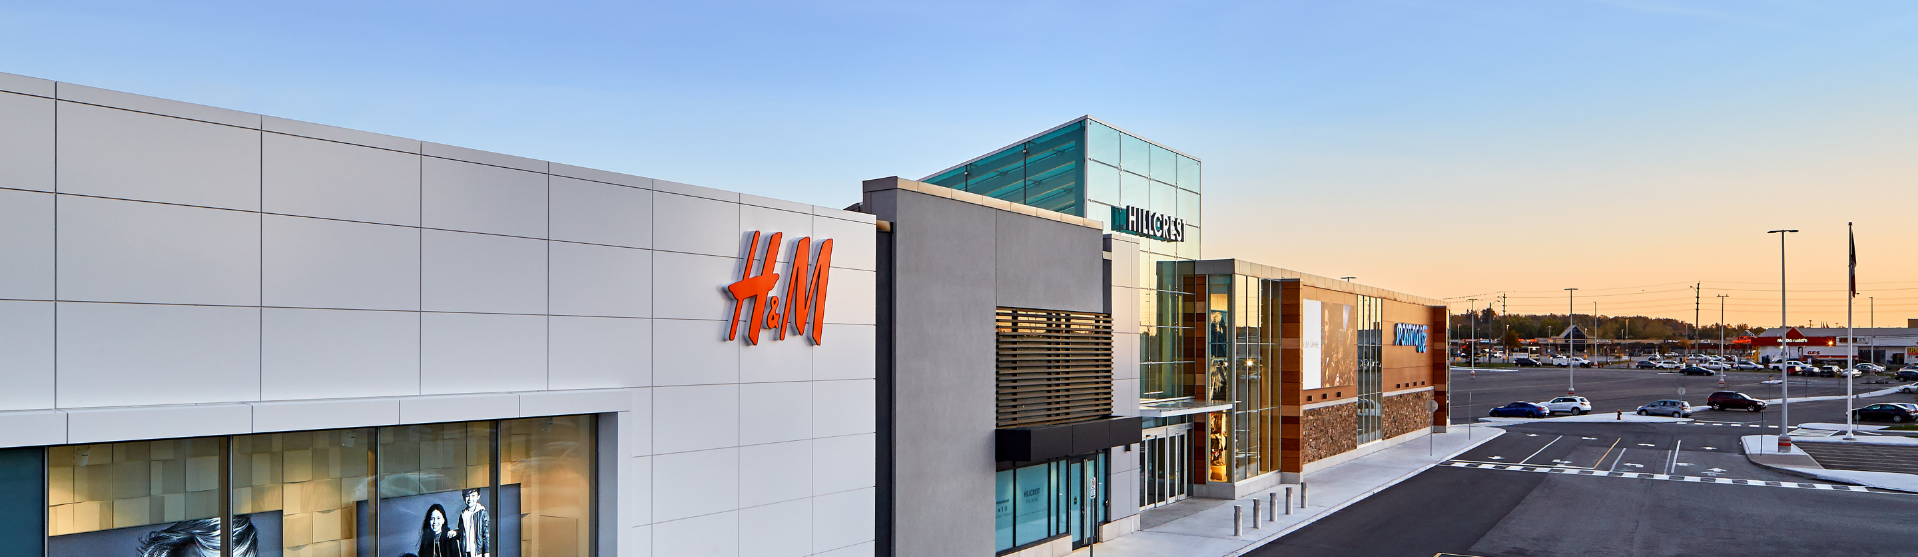 Exterior shot of Hillcrest with the H&M sign